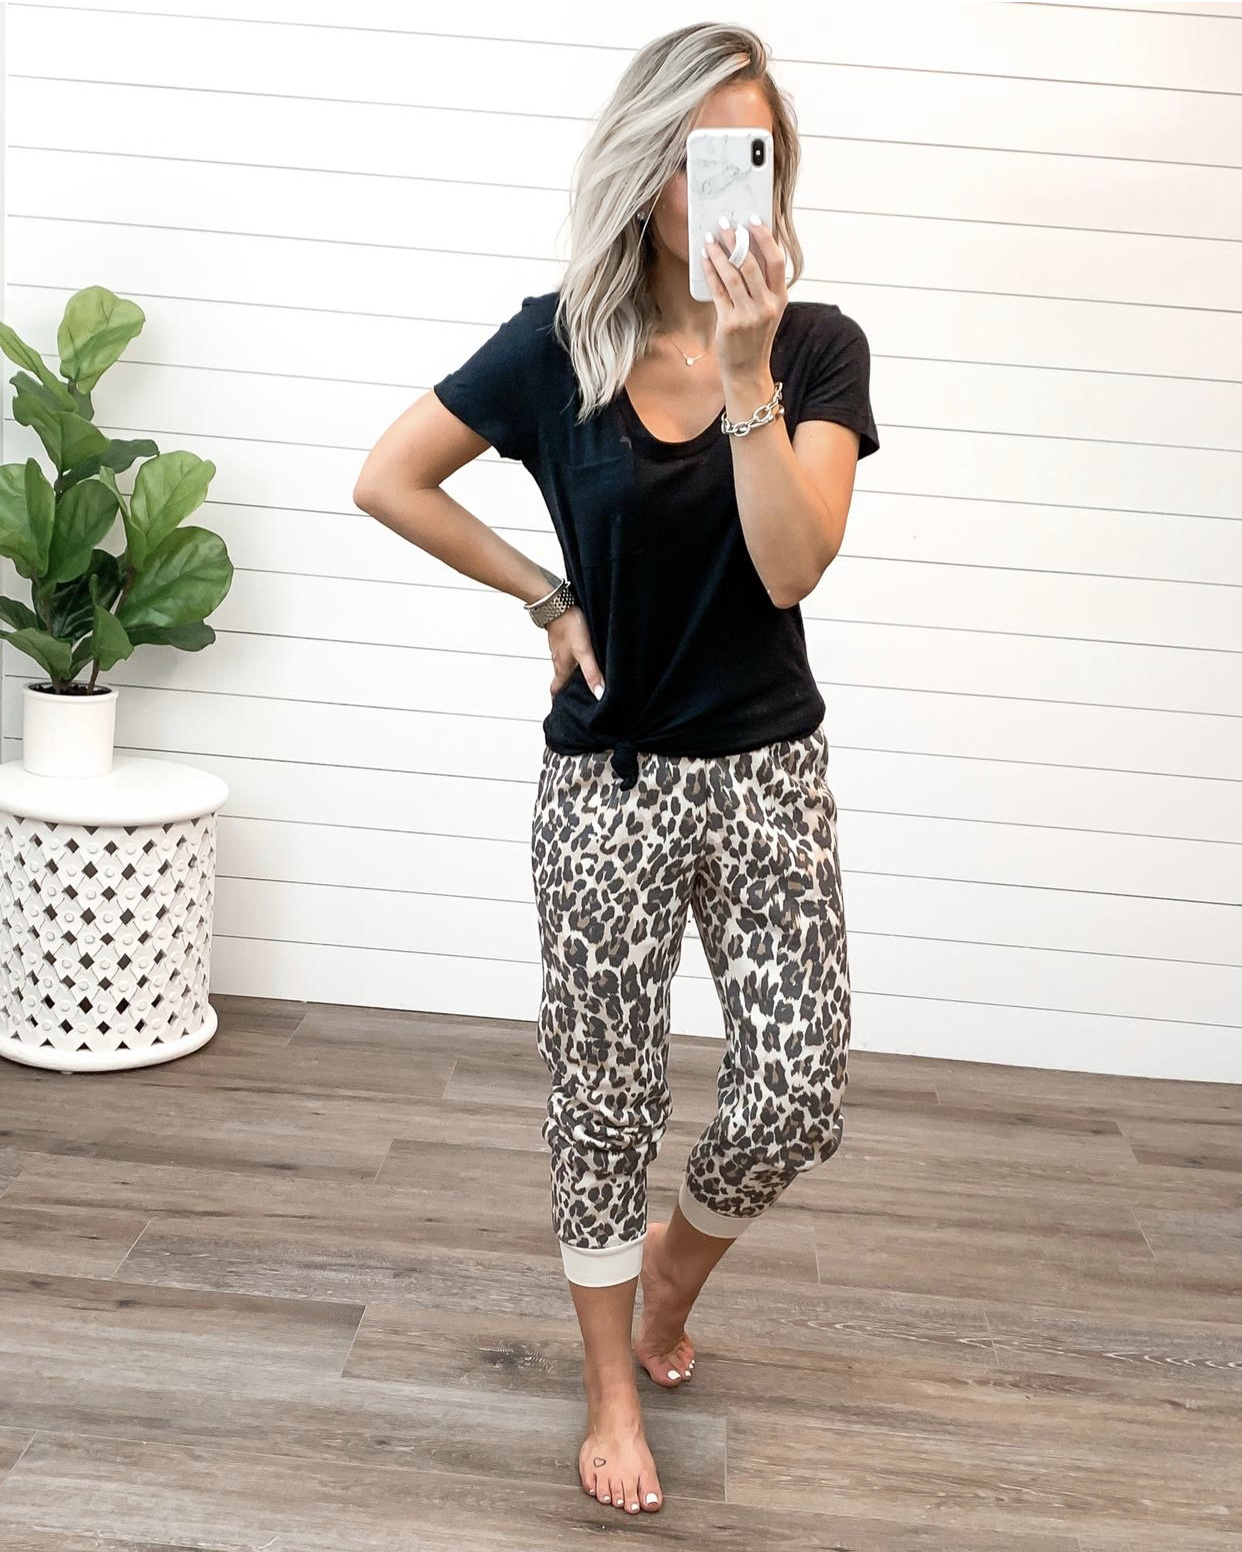 nordstrom anniversary sale nsale 2019 fall basics summer to fall transition casual outfits Laura Beverlin 19